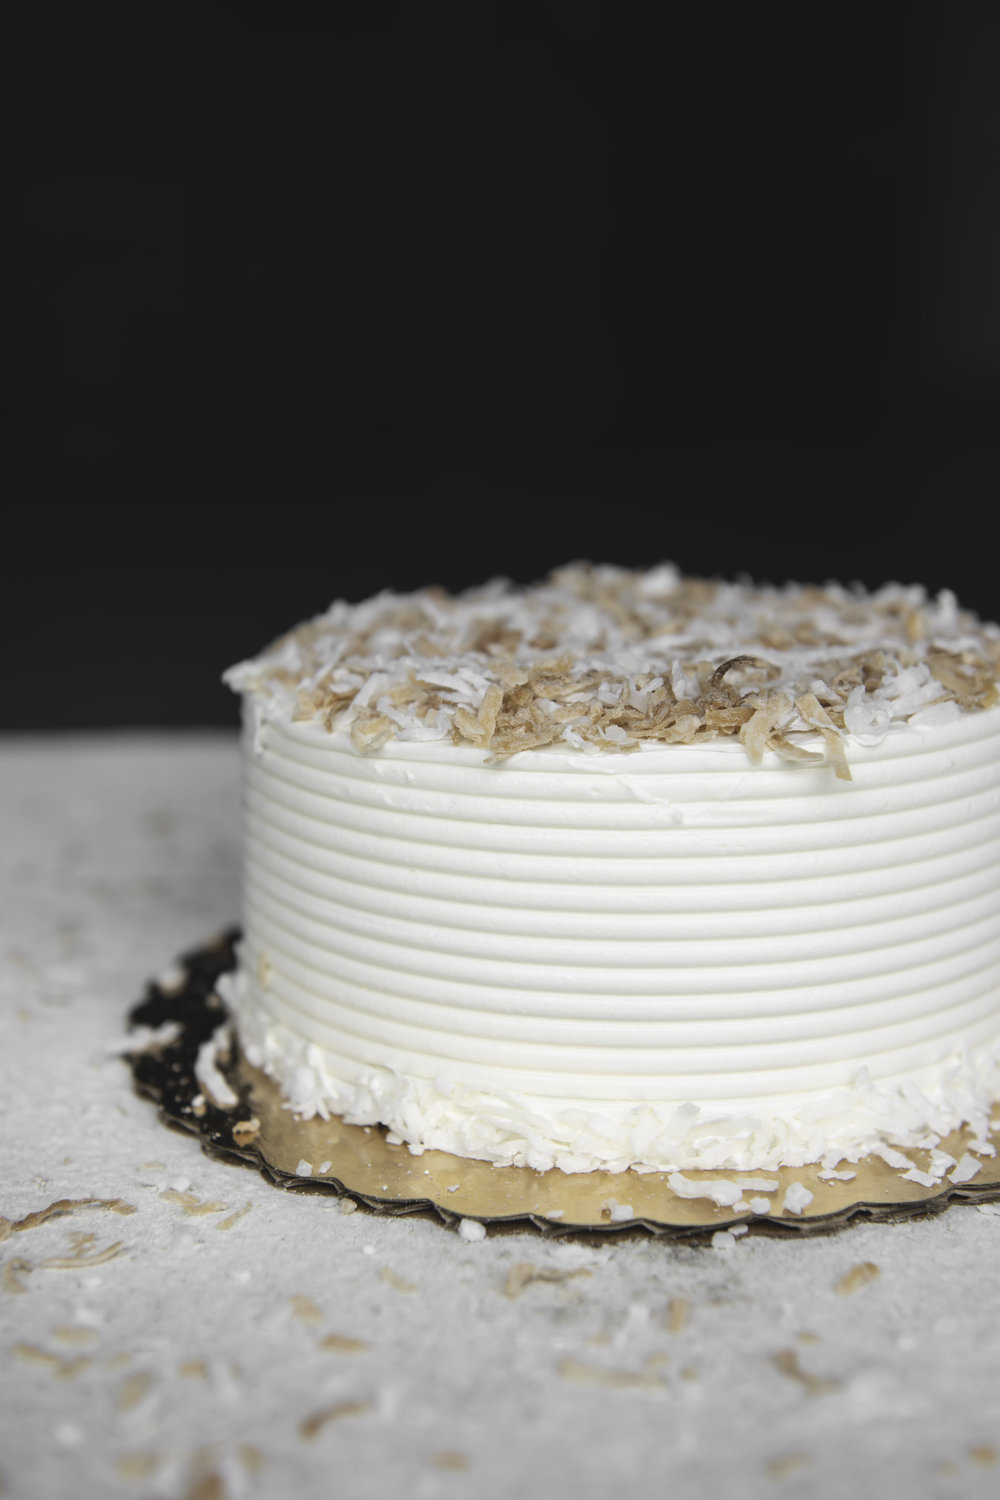 Coconut Cake - This creamy coconut cake is made with coconut puree and piped with a generous serving of coconut buttercream. Tiki torches recommended but not required.